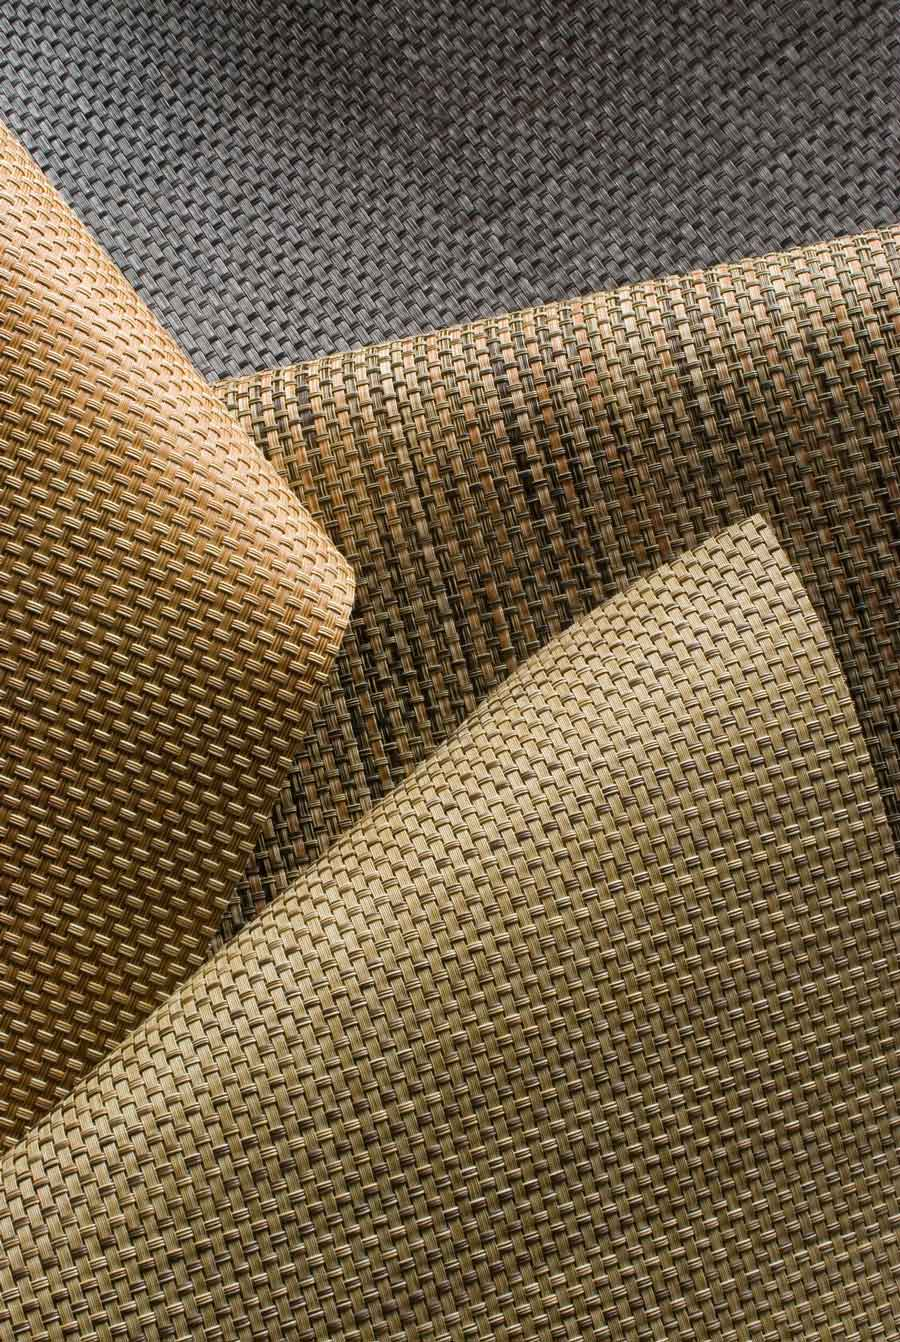 Wicker Weave Collection Boat Rv Aviation Flooring